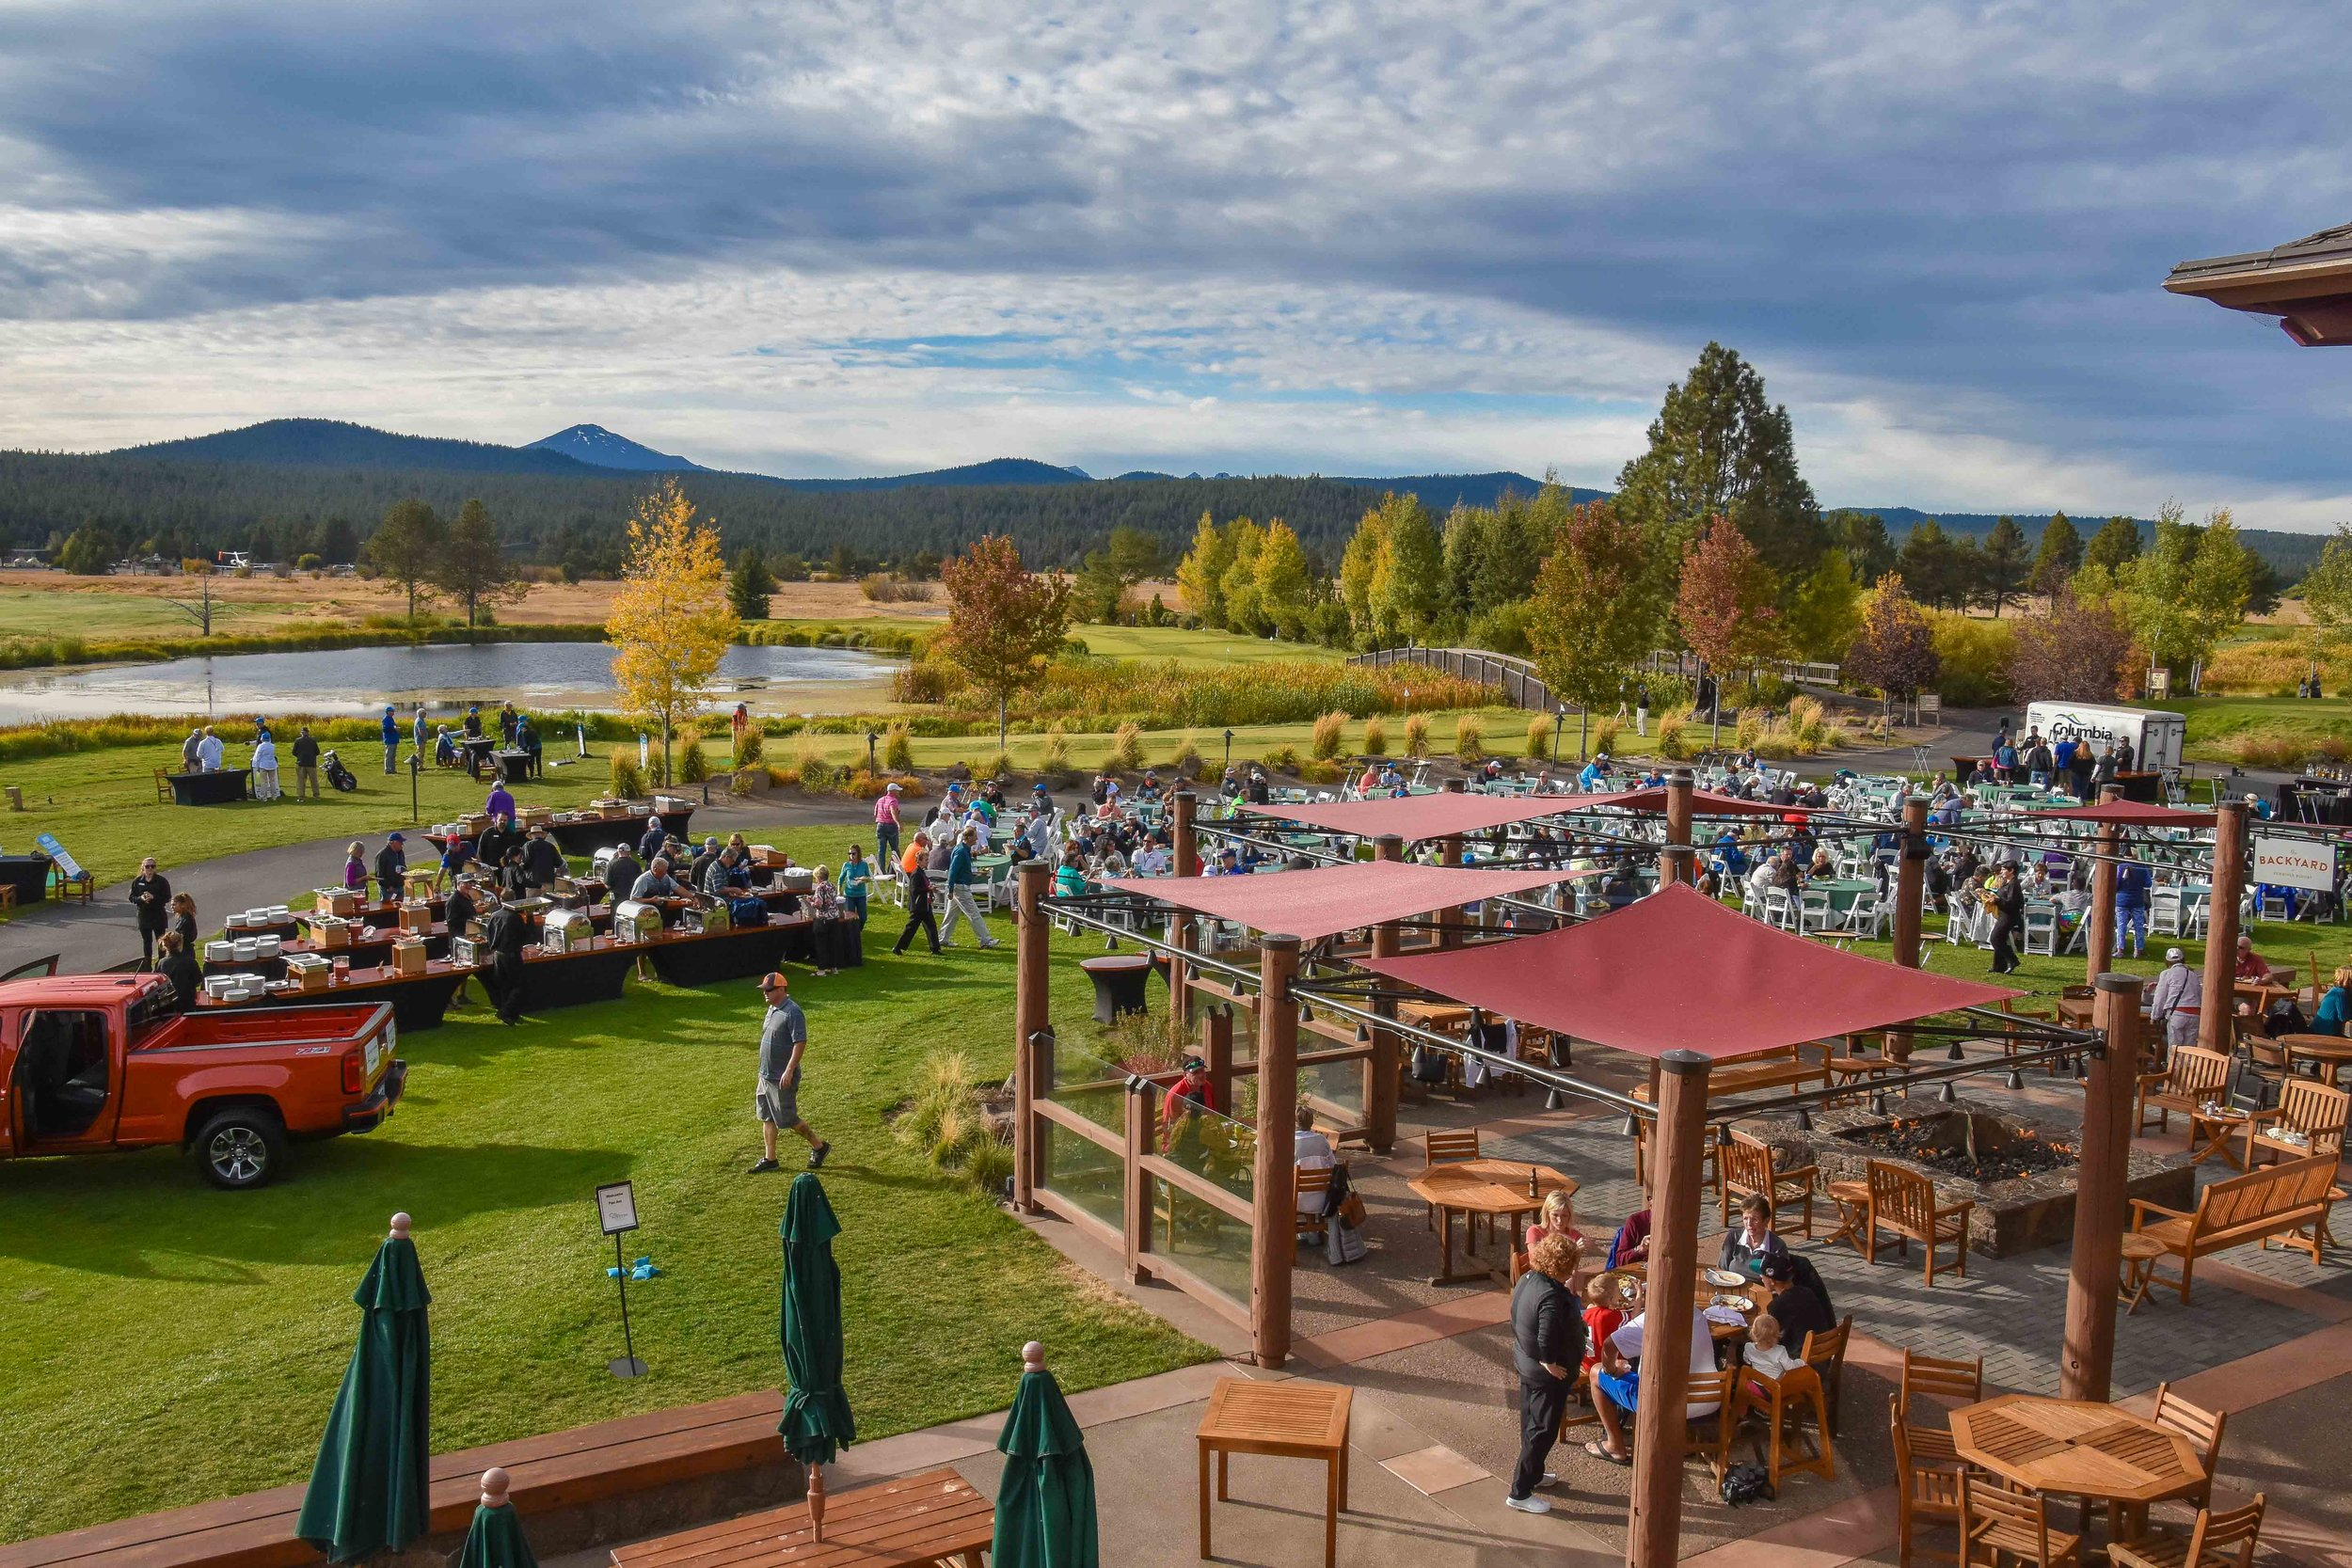 The Festival of Golf gets underway at the Sunriver Resort.